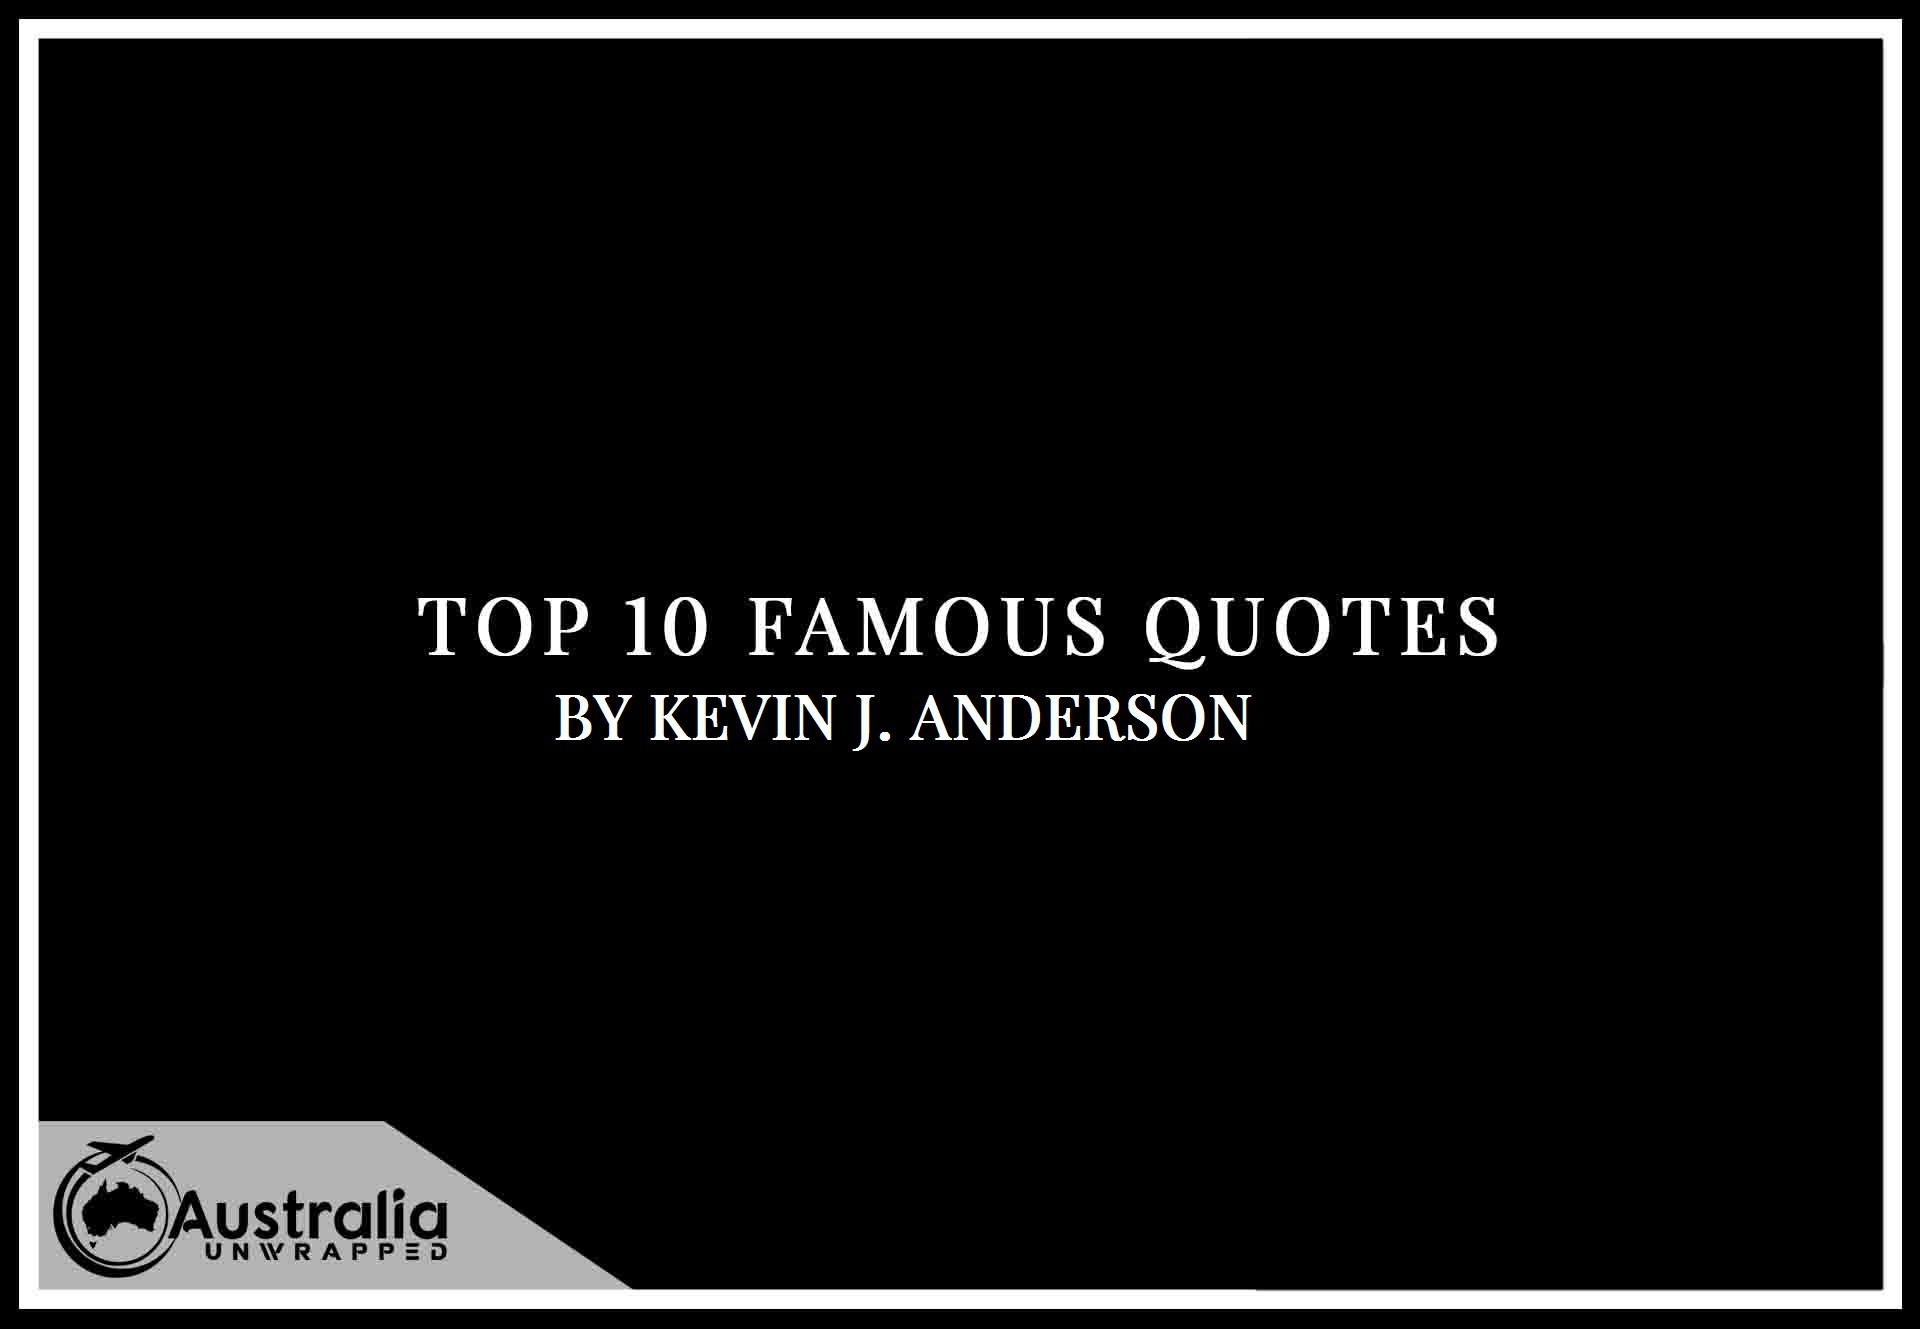 Kevin J Anderson's Top 10 Popular and Famous Quotes